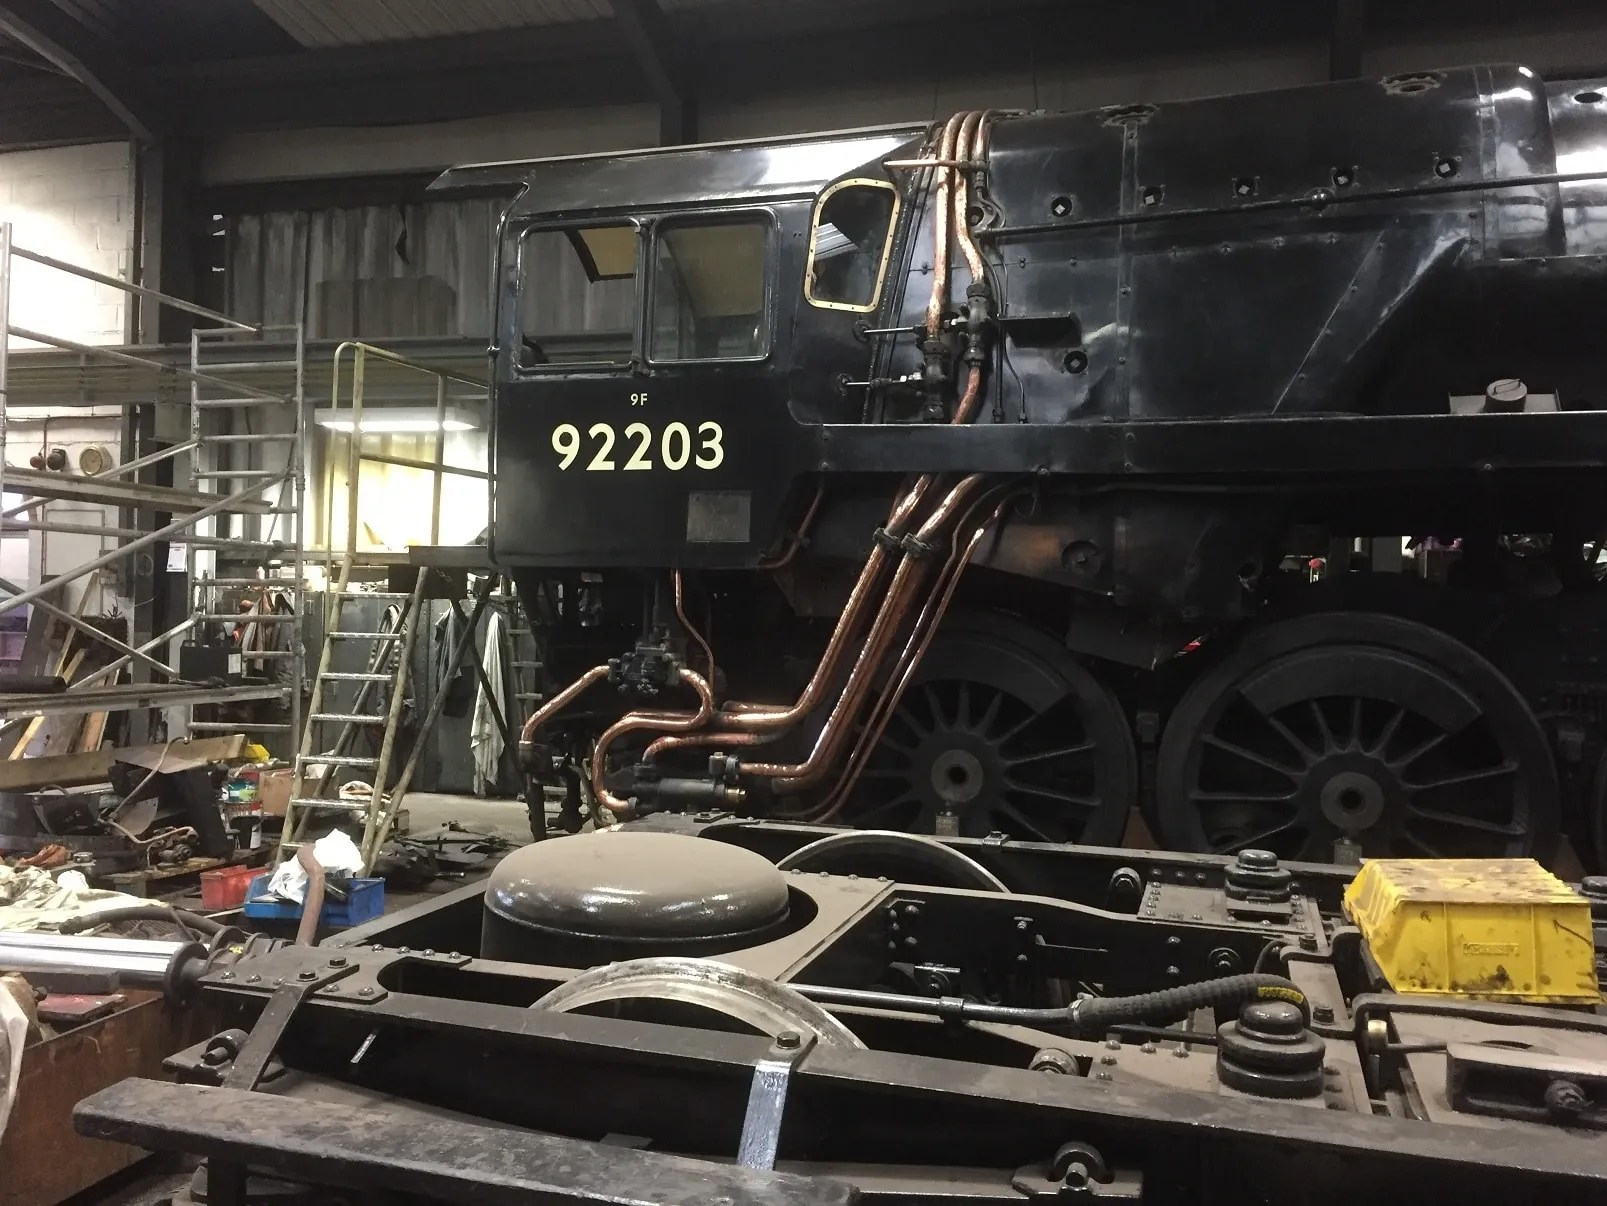 9F - 92203 - Black Prince - North Norfolk Railway workshop